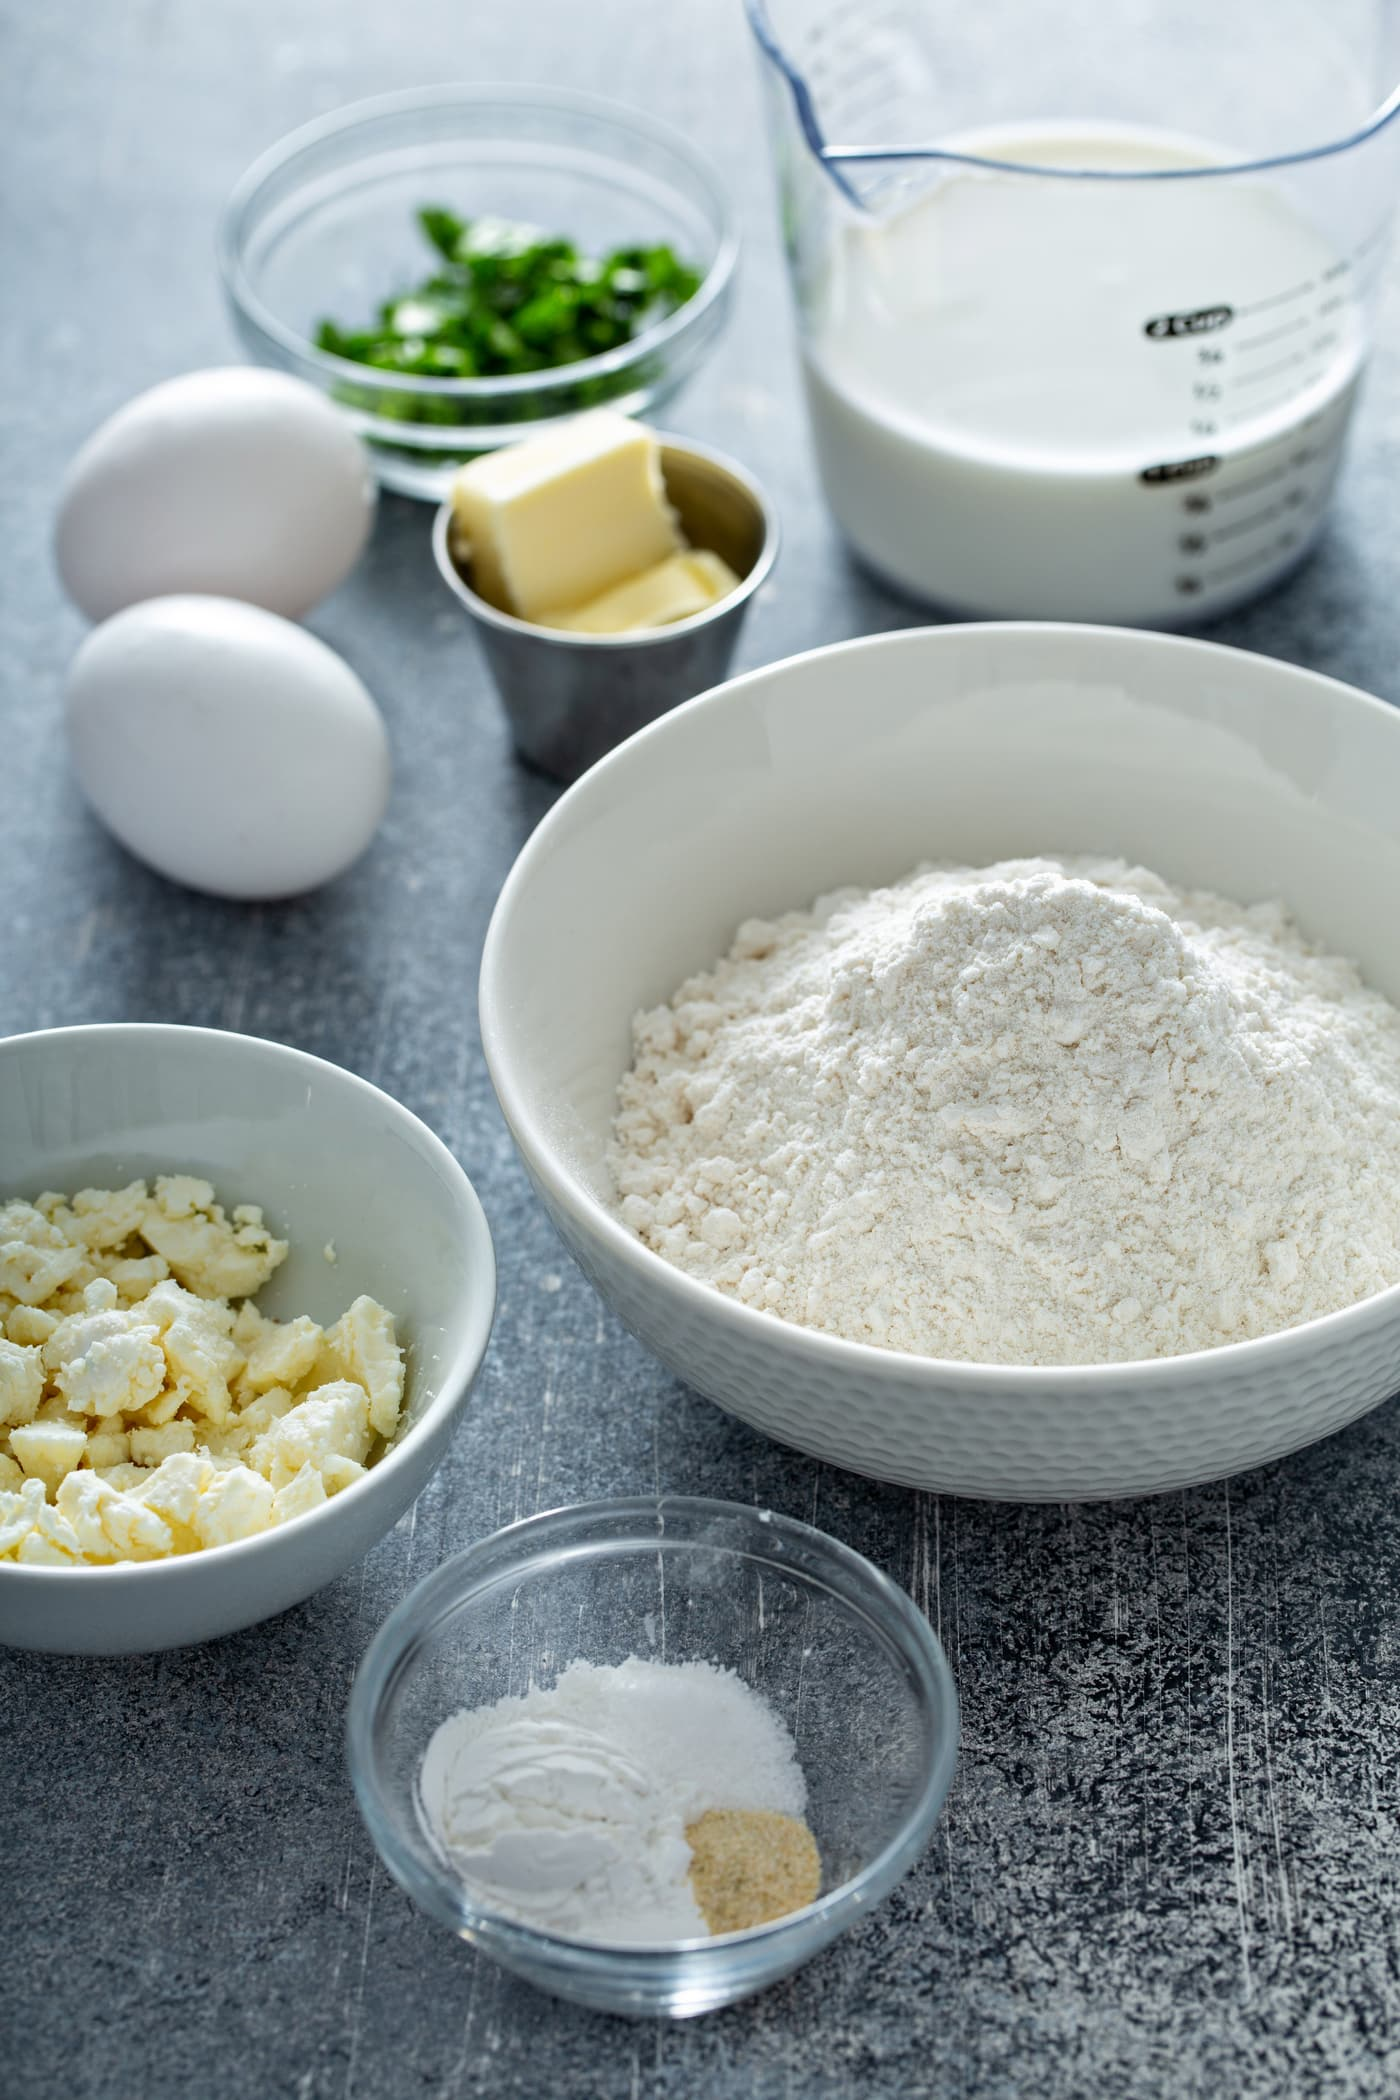 A table top with containers of Flour, feta cheese, butter, salt, green herbs and two white eggs.